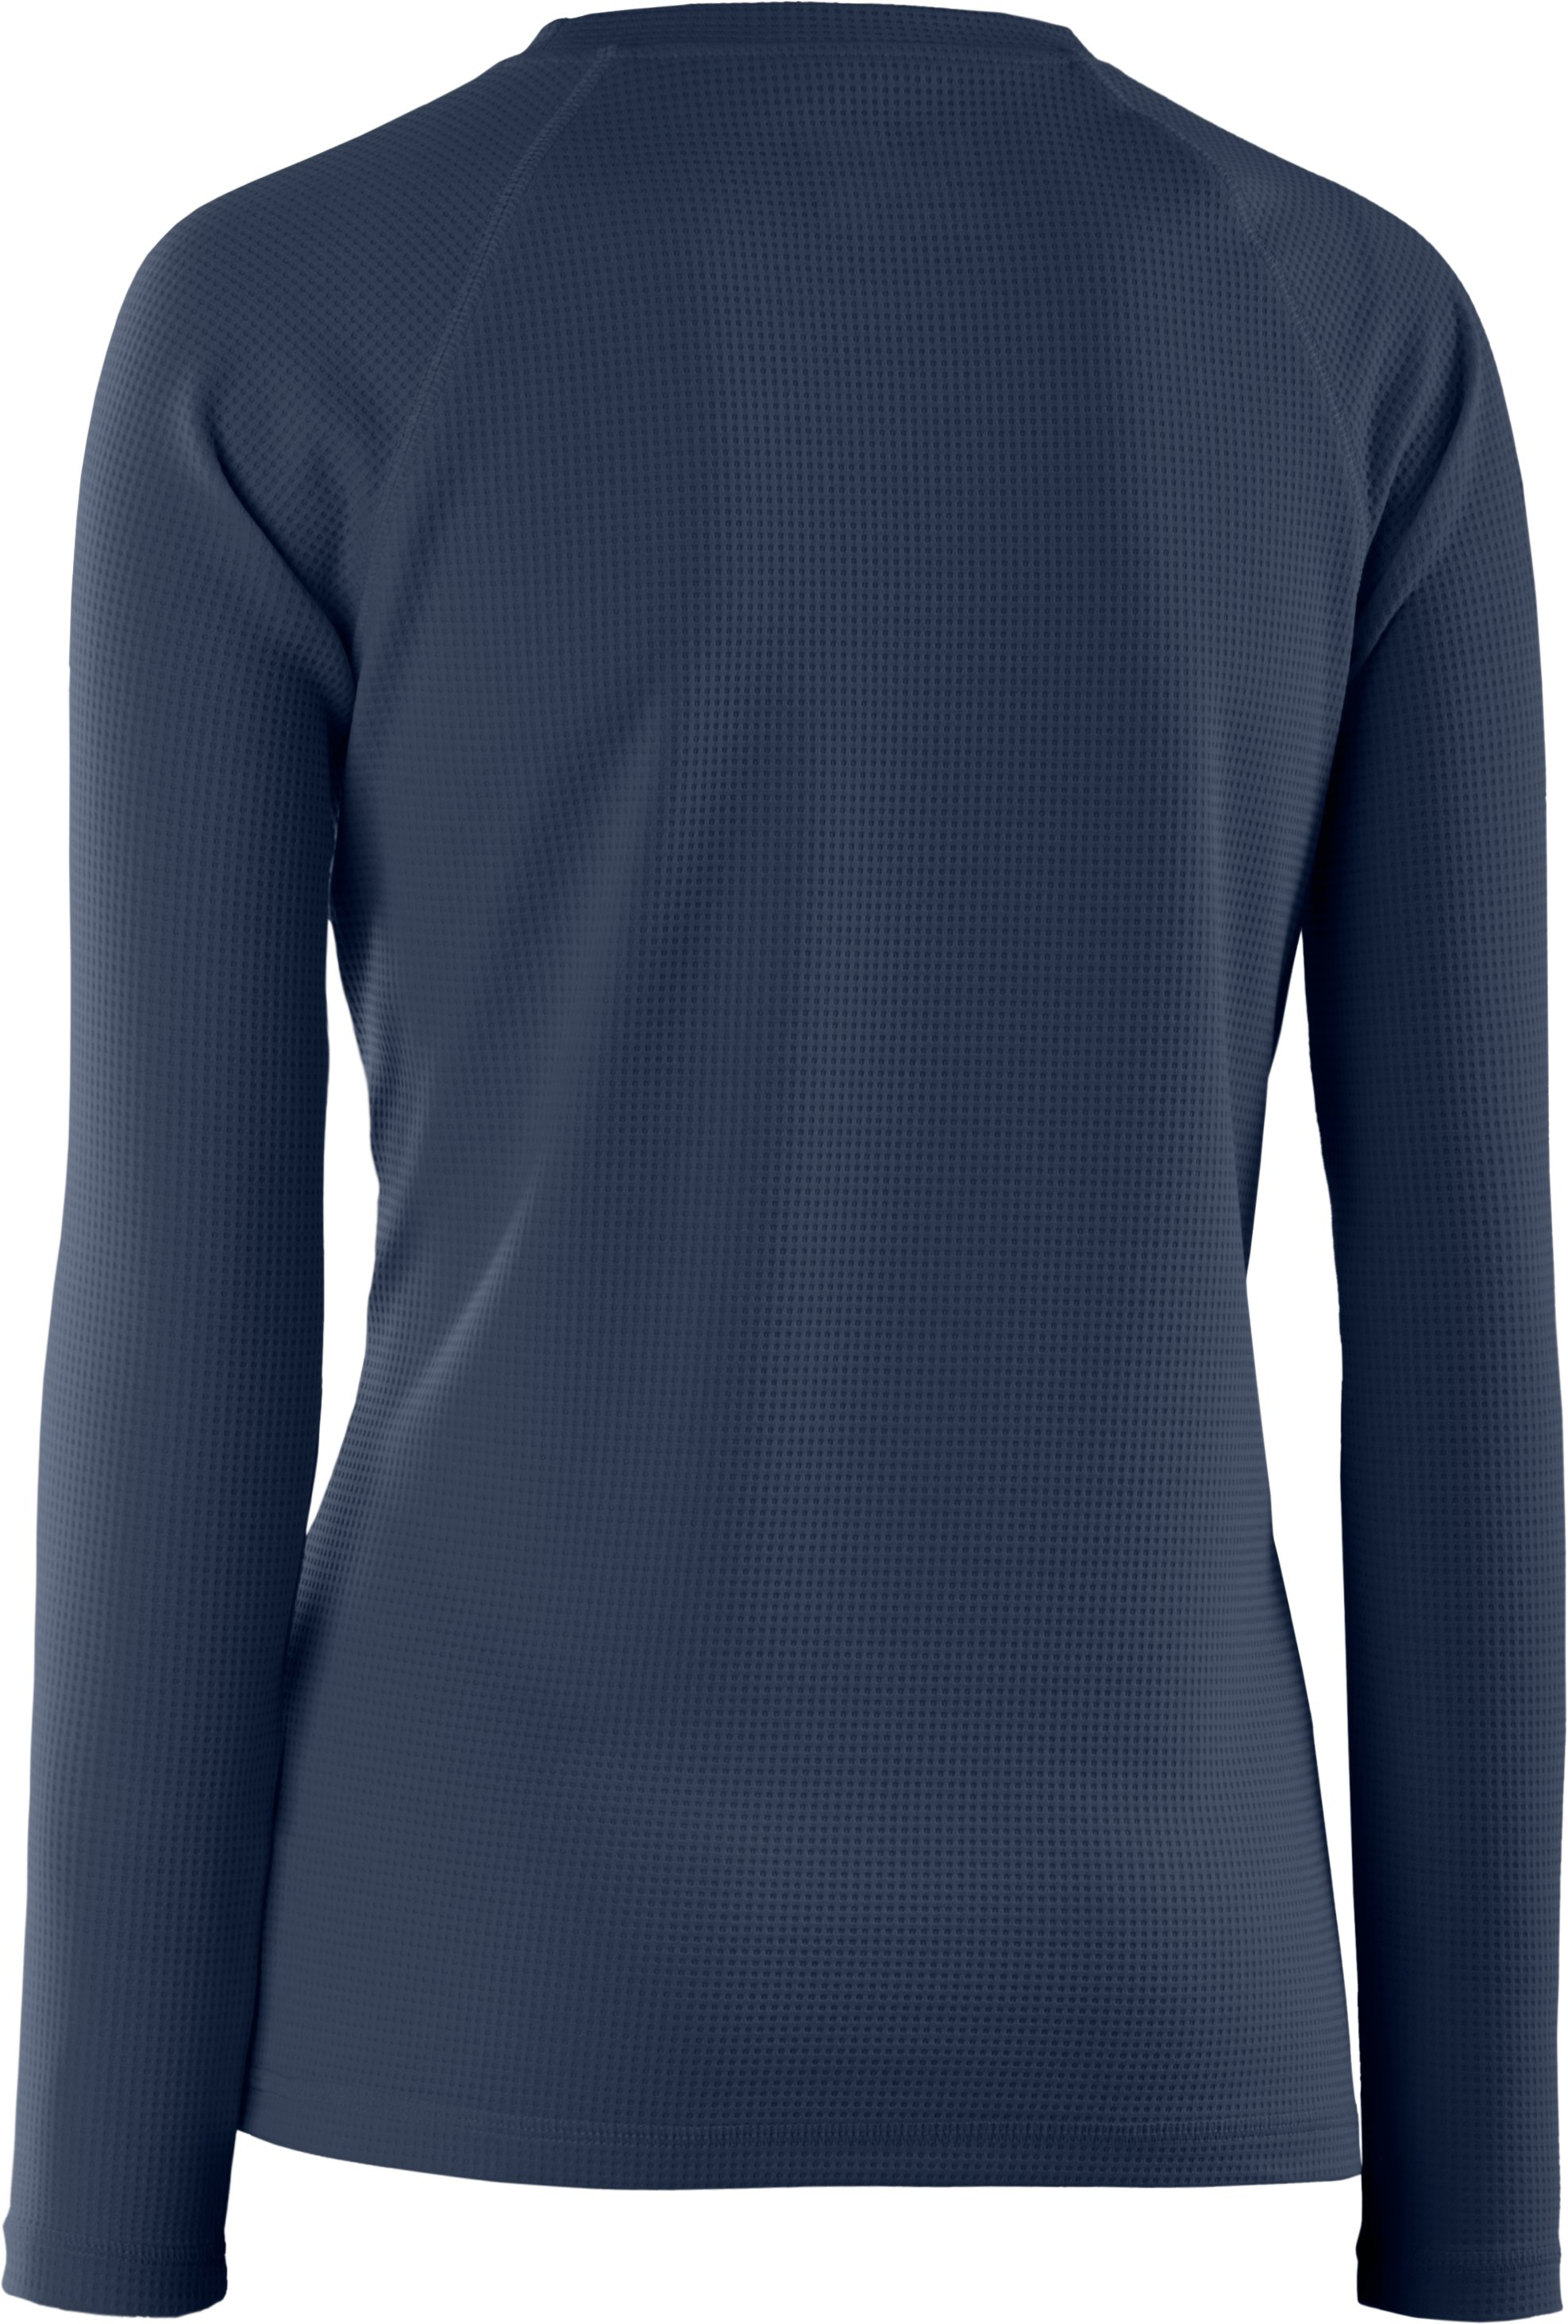 Boys' UA Momentum Shirt, Mechanic Blue